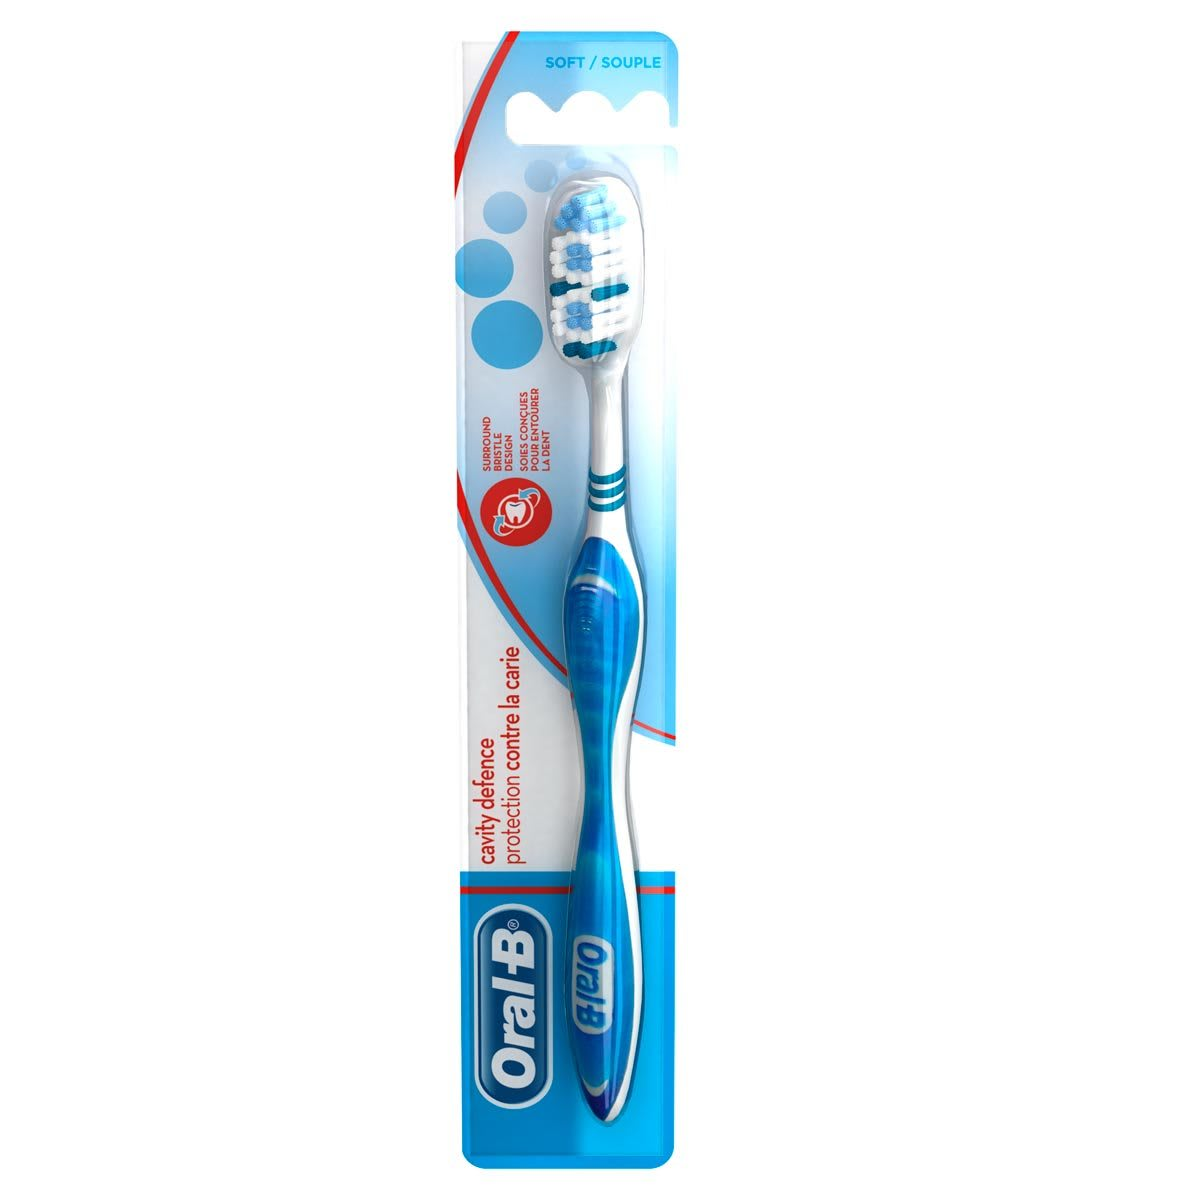 Oral-B Protection Anticarie Brosse à Dents Manuelle